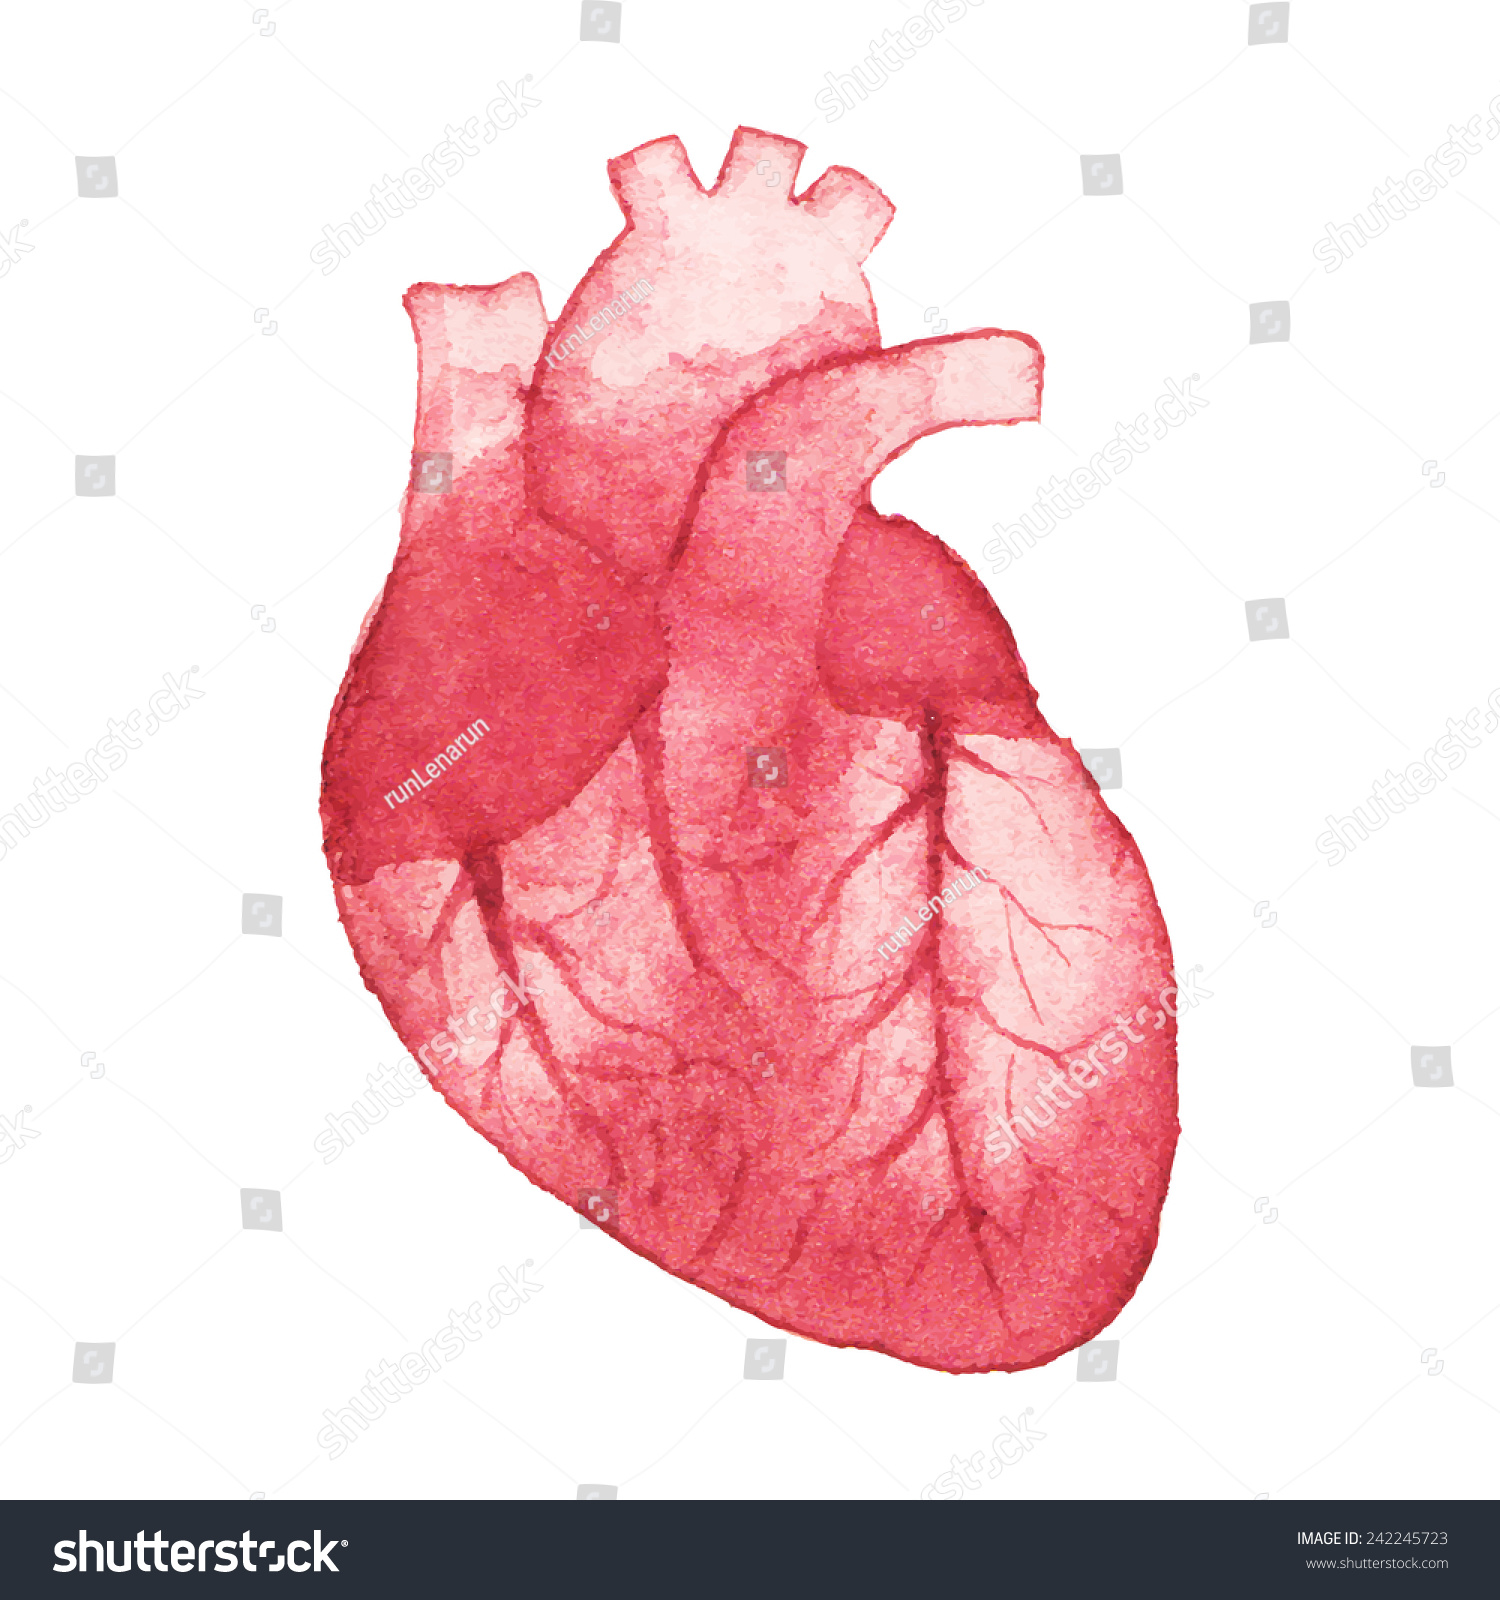 realistic heart diagram 2008 chevy trailblazer parts watercolor on white background stock